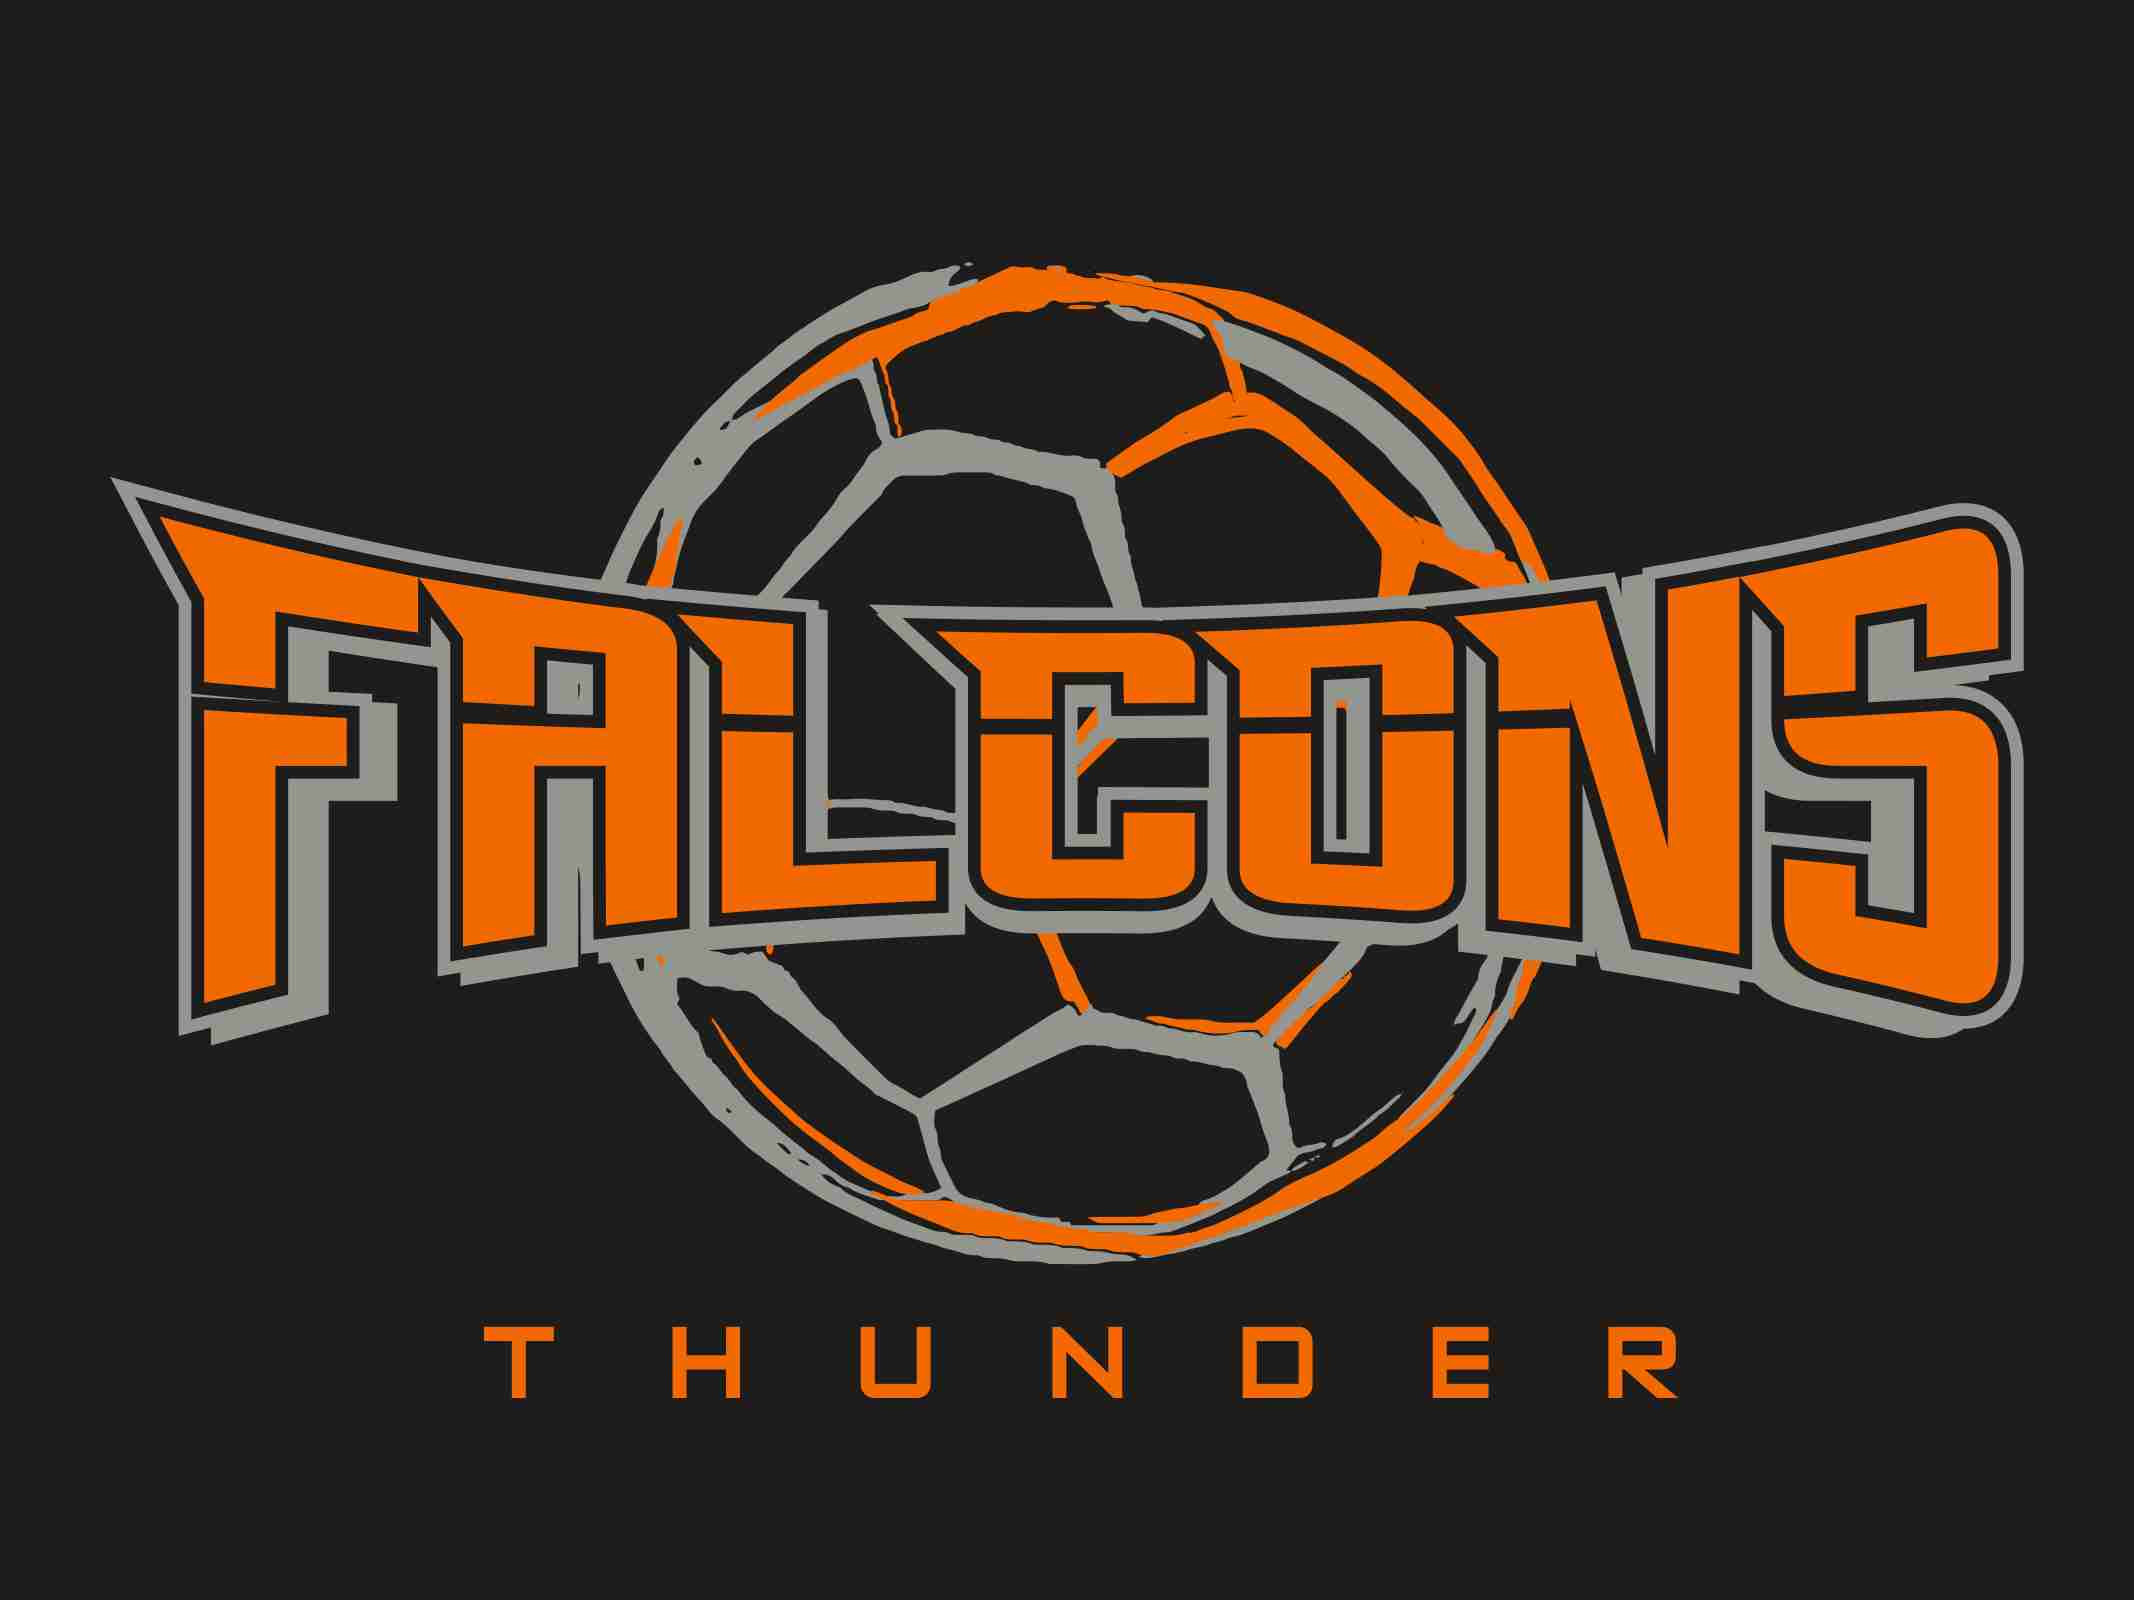 Falcons Thunder